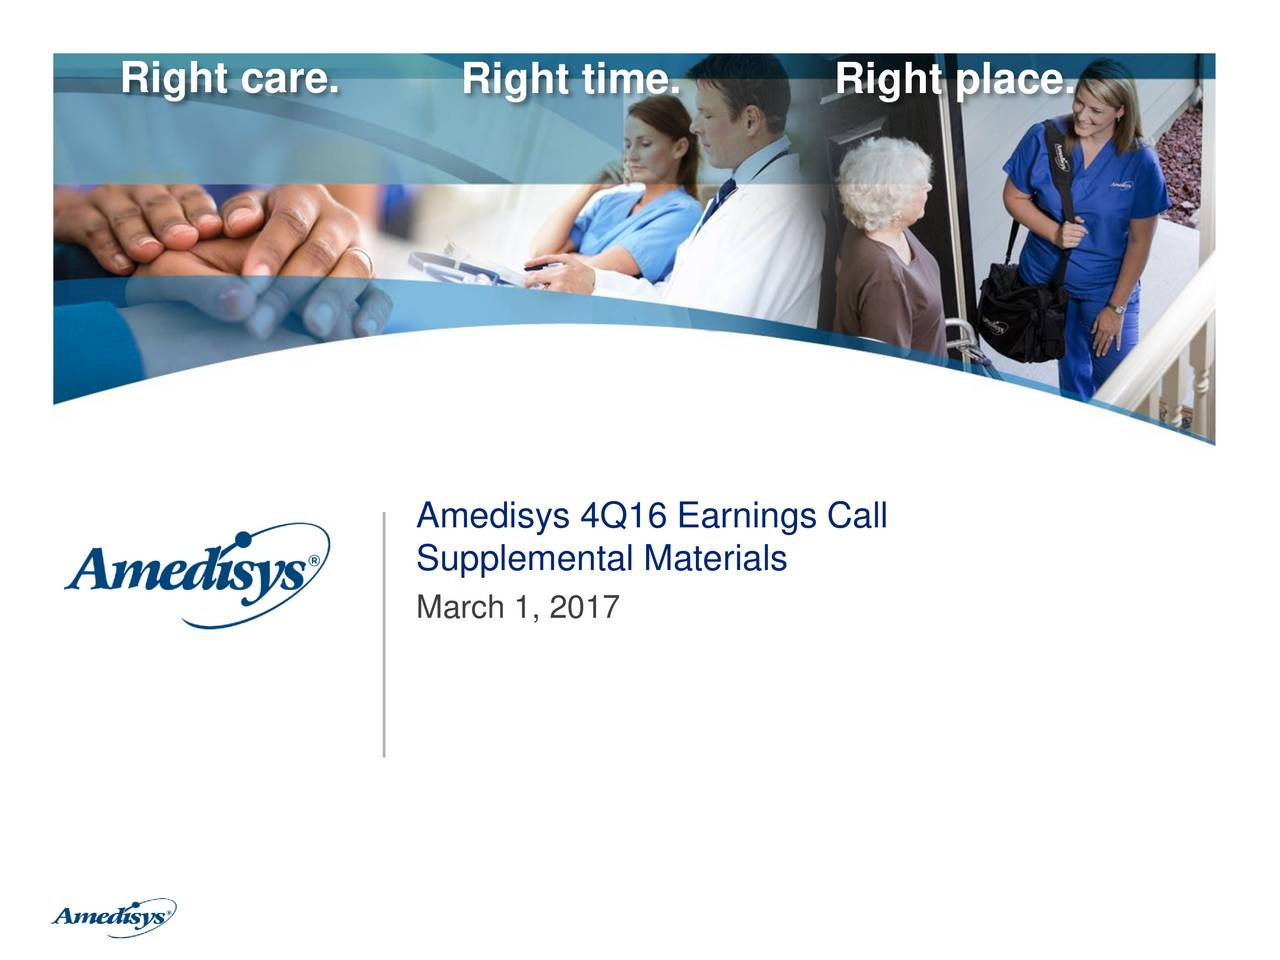 Amedisys 4Q16 Earnings Call Supplemental Materials March 1, 2017 0